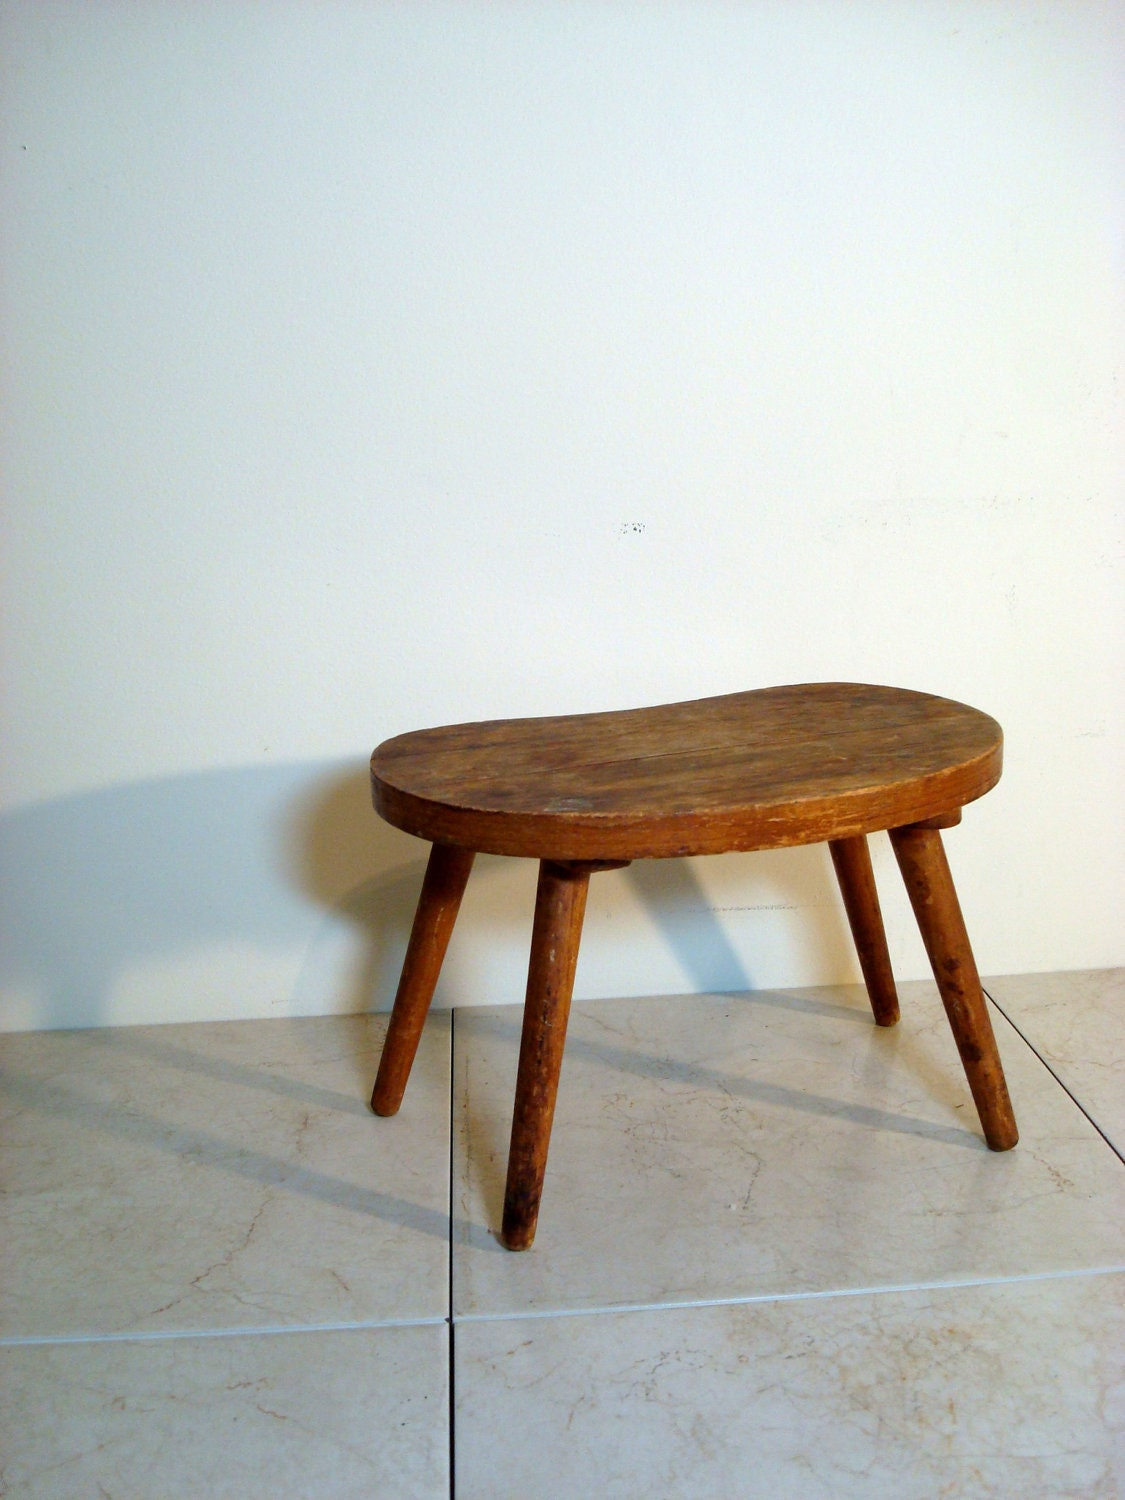 Vintage Small Wooden Handmade Milking Stool By Chasevintage